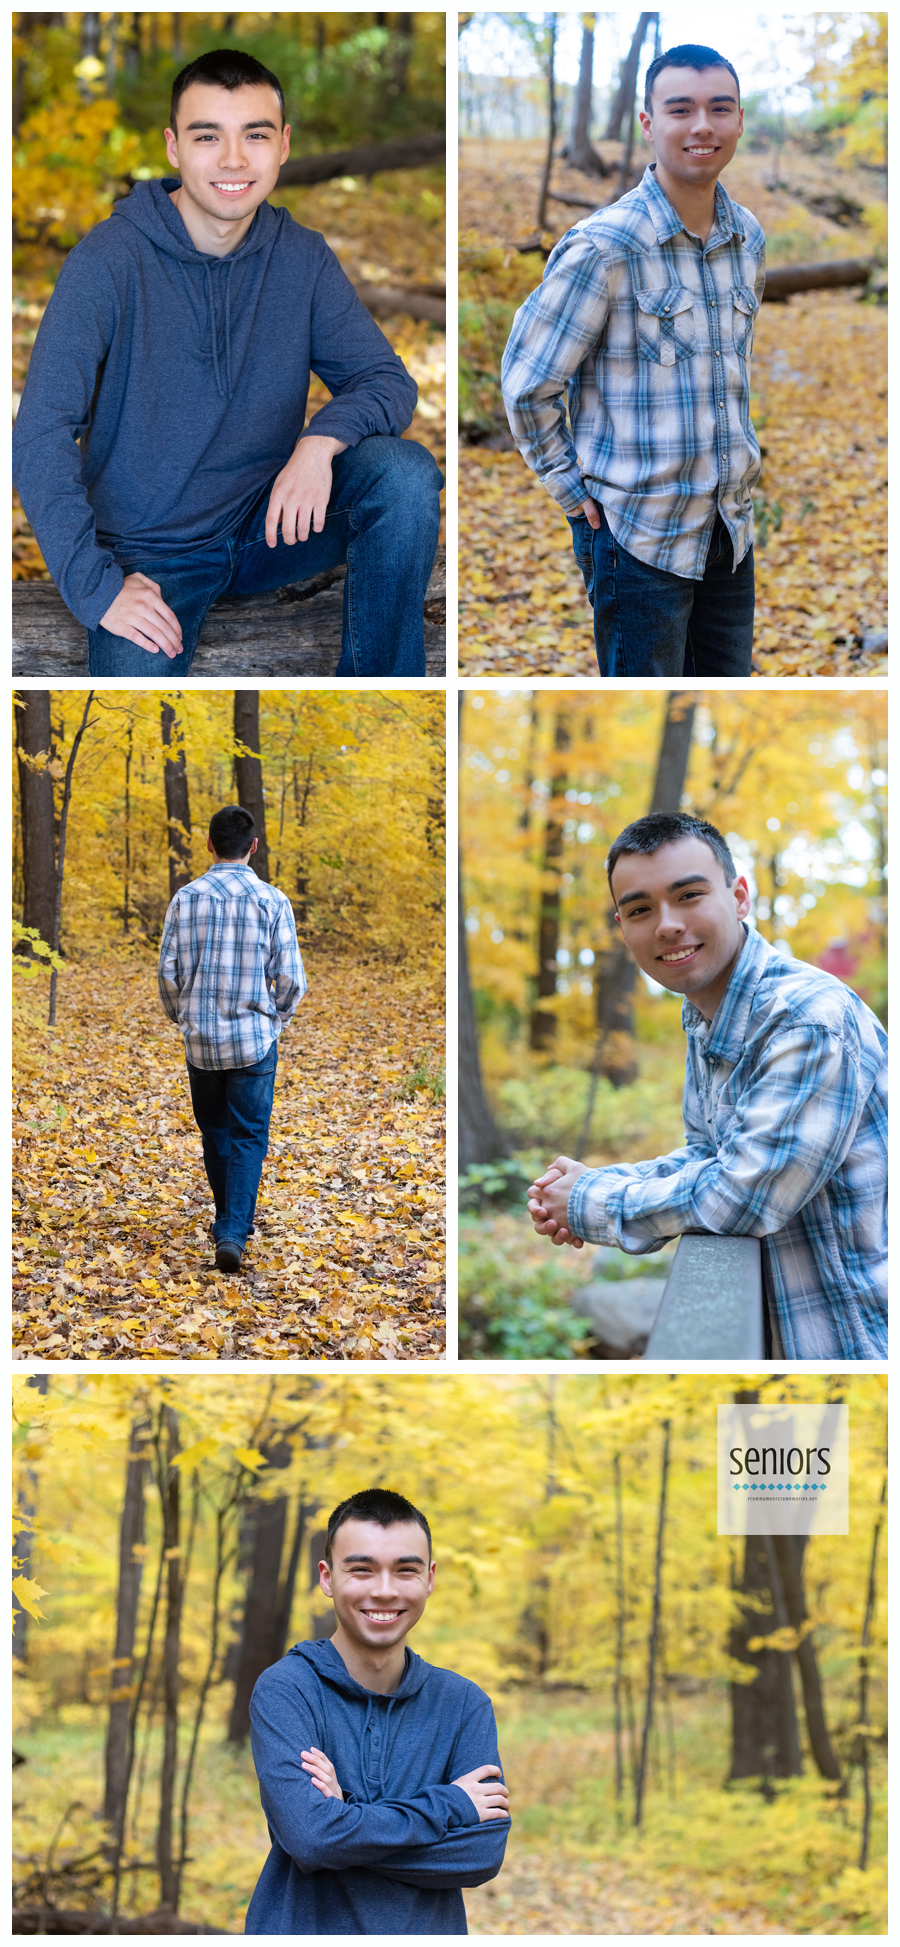 Rogers teenager having senior pictures taken at Henry's Woods Park in Rogers, Minnesota